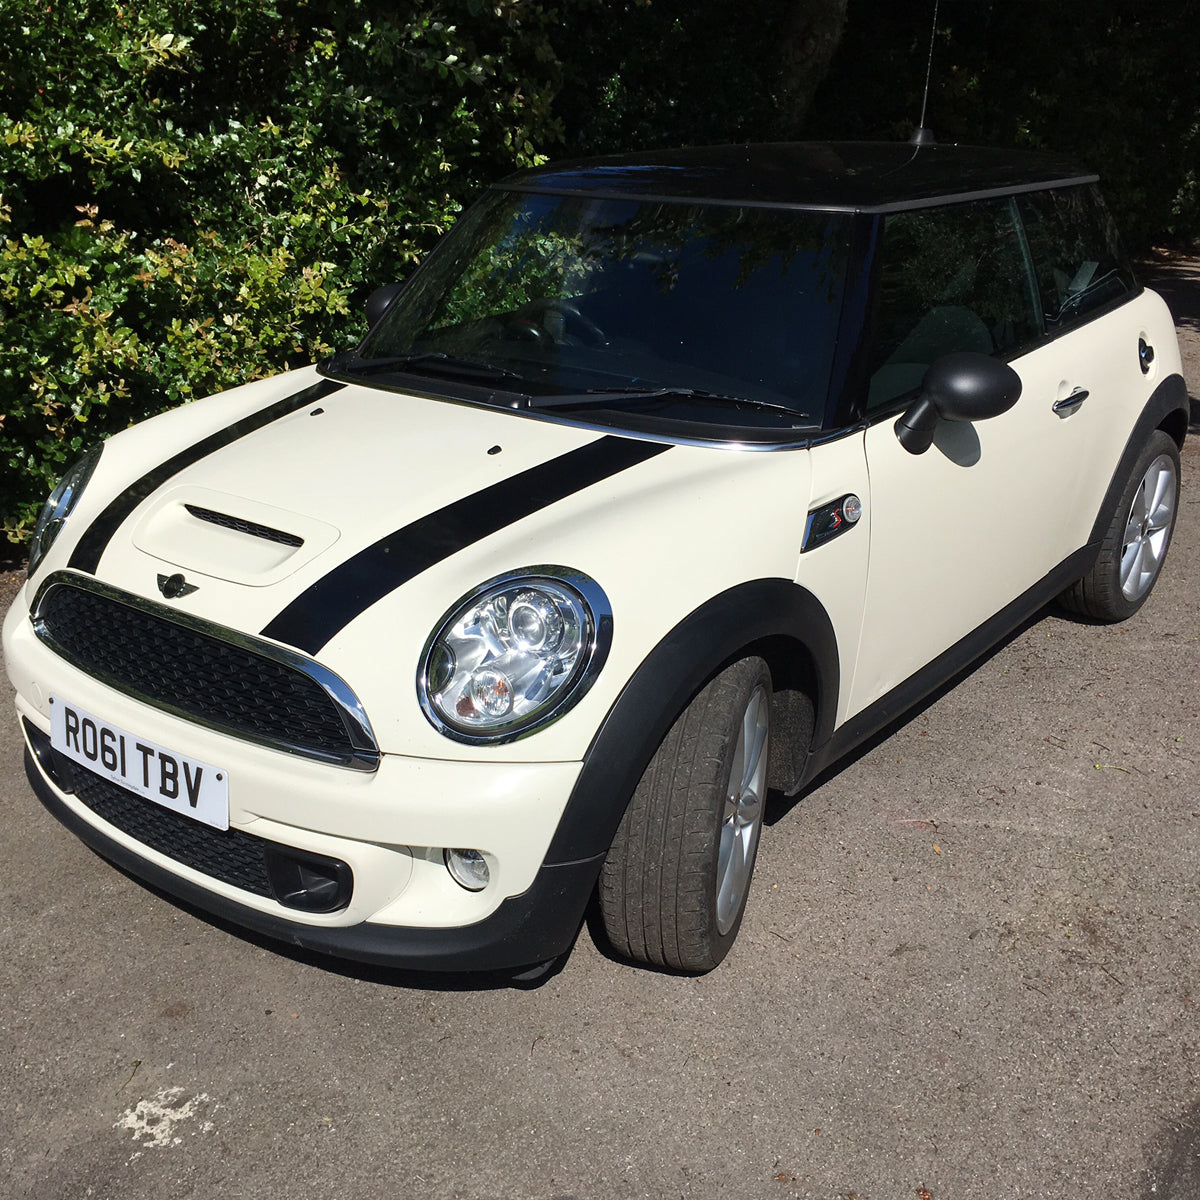 MINI Cooper S turbo for sale at Mini Works in Sussex